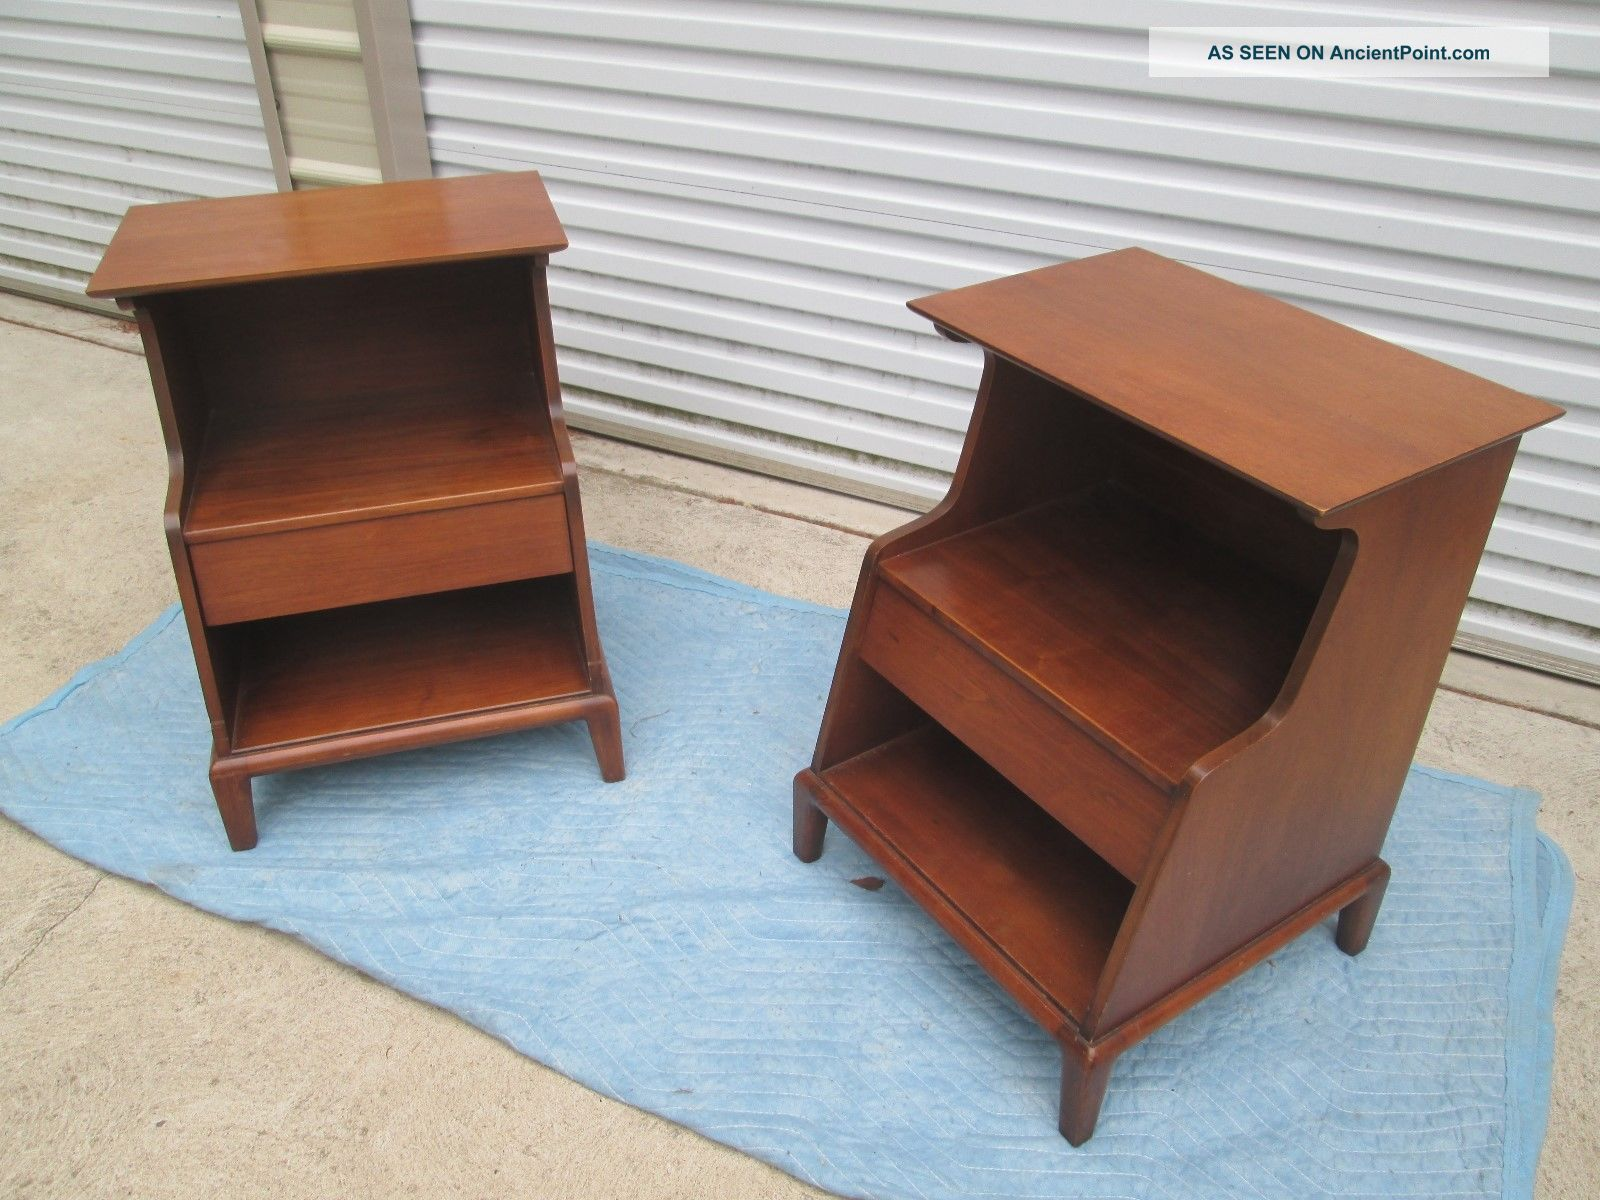 Henredon Heritage Walnut Night Stands End Tables Mid Century Modern Post-1950 photo